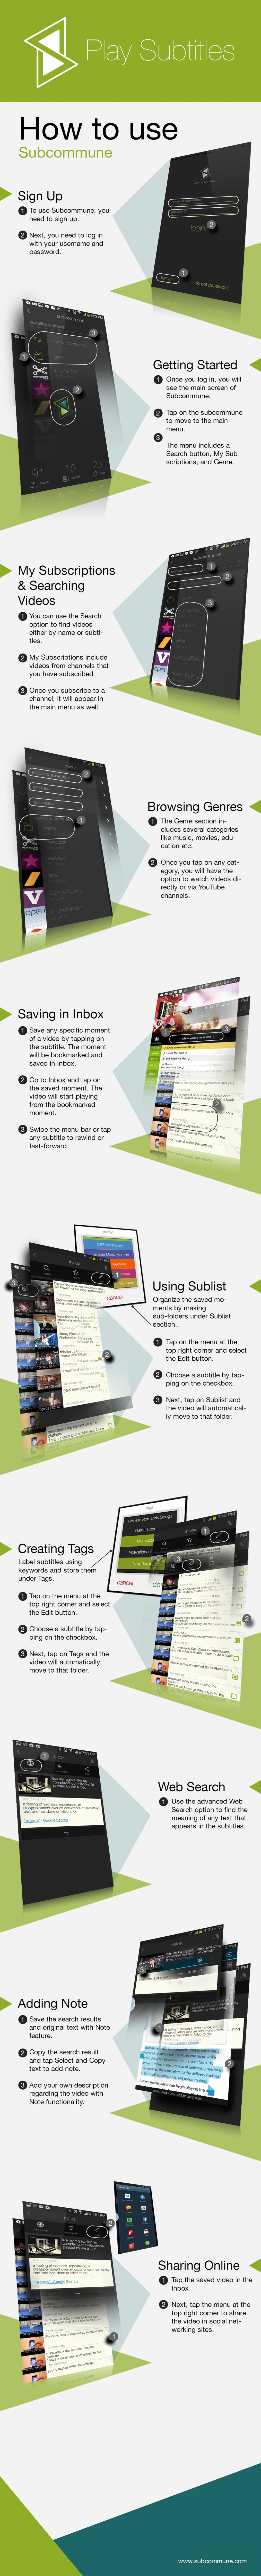 How to Use Subcommune  Infographic